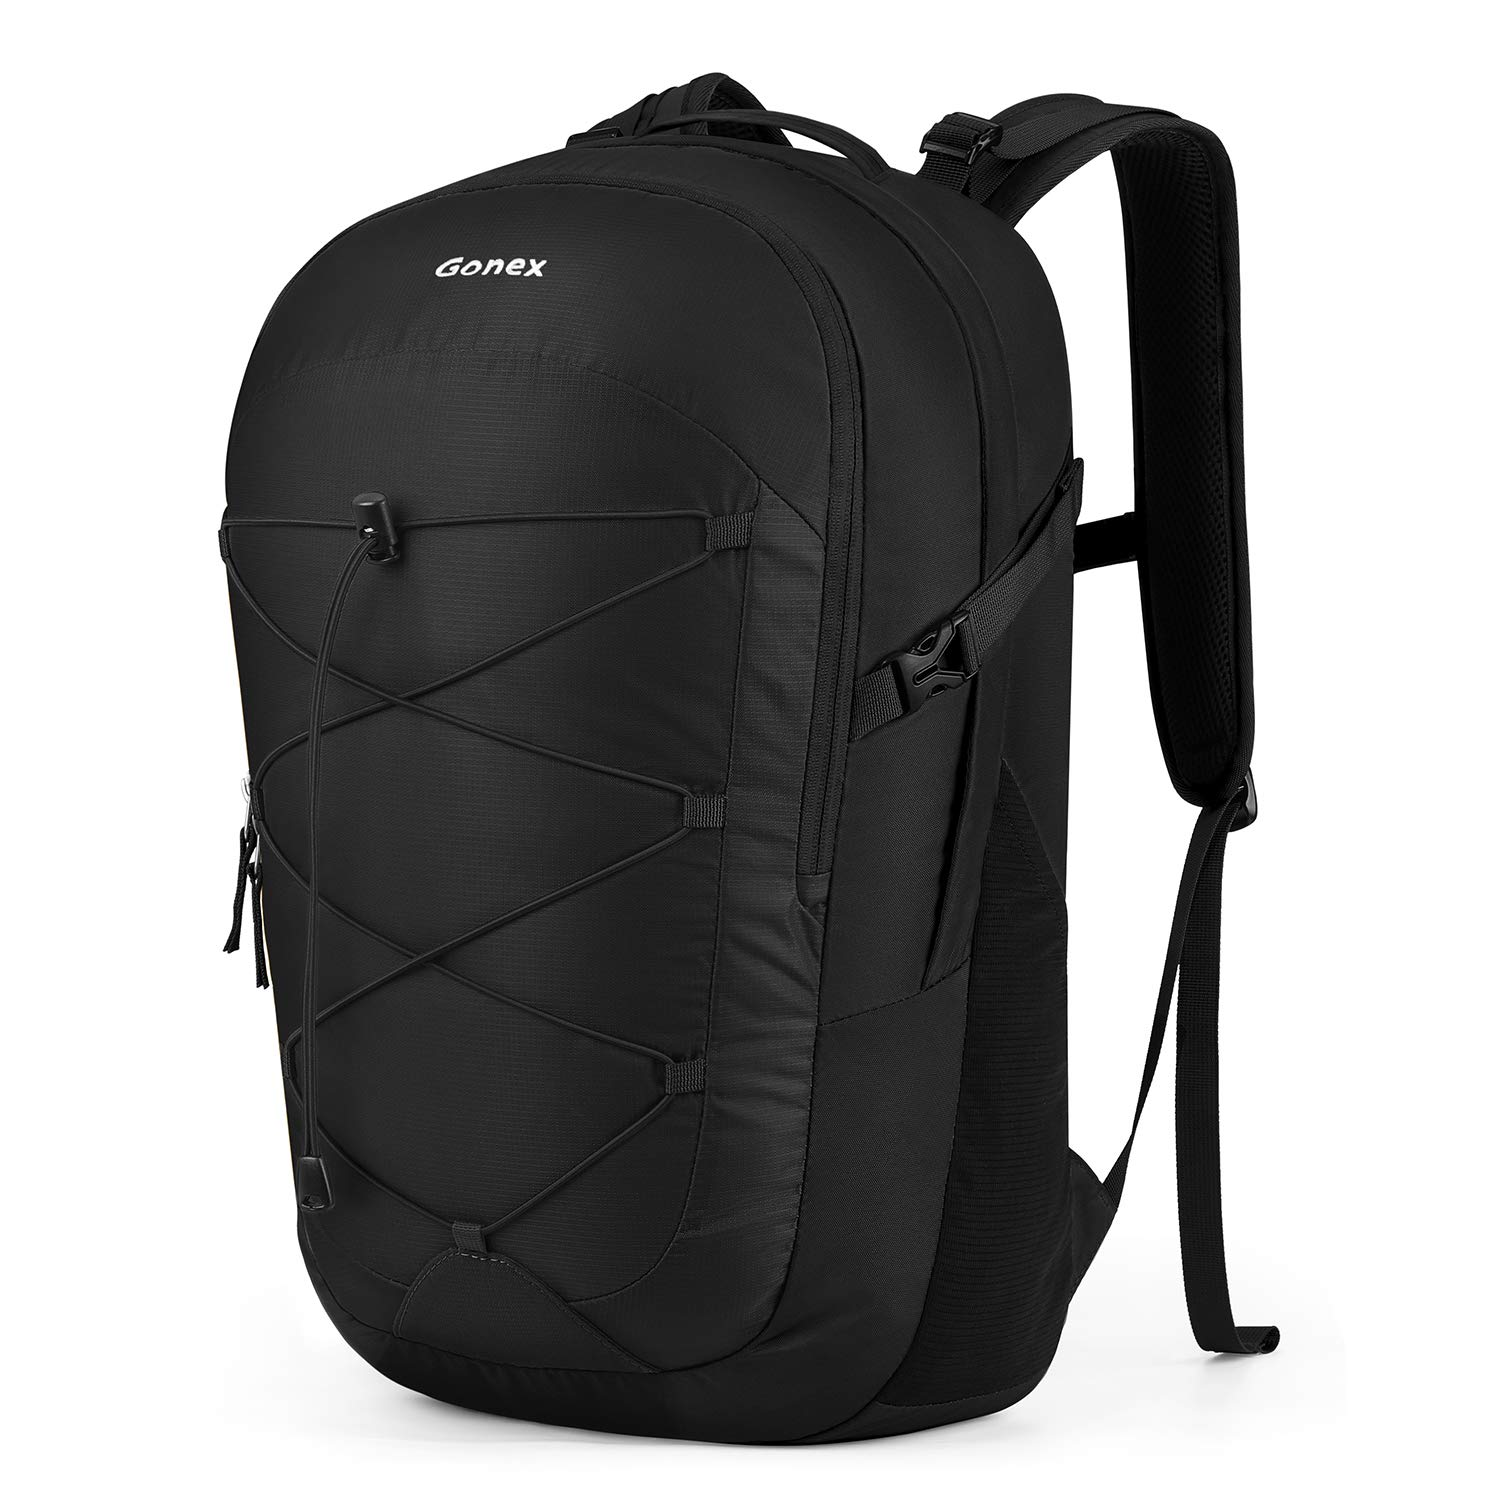 Gonex Travel Laptop Backpack, 35L Casual Daypack College School Computer Bookbag for Women Men for Work Office School Business Trip Travel Camping Hiking Outdoor Fits 15 Inch Laptop Black